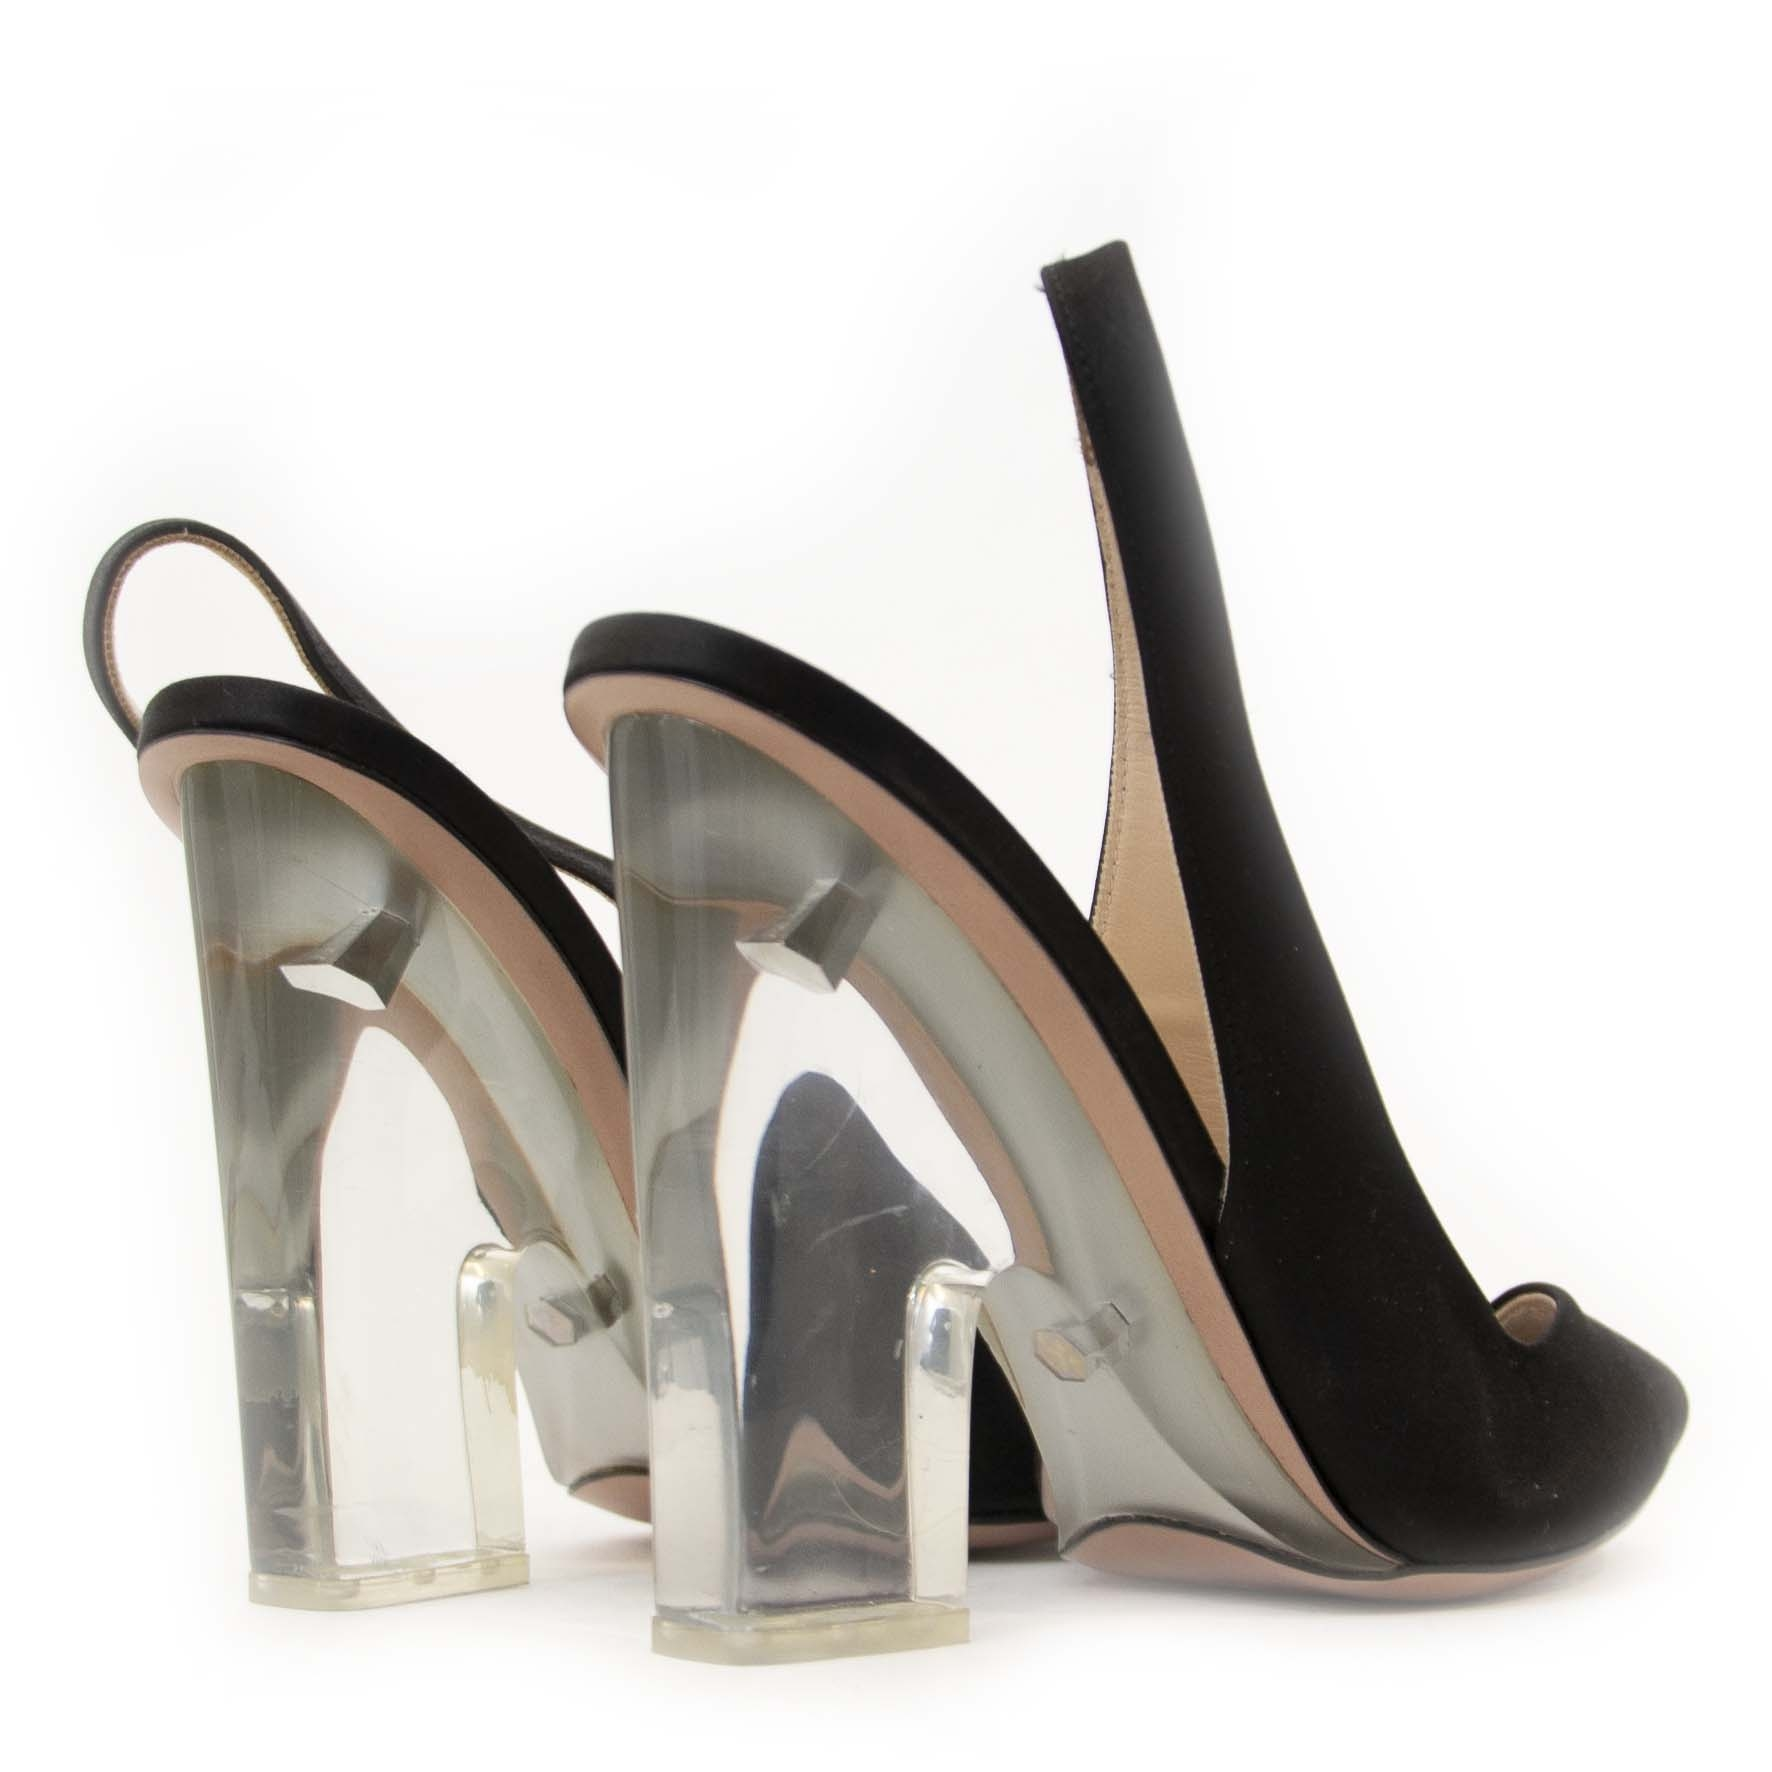 Secondhand Prada black peep toe heels at Labellov. Safe online shopping